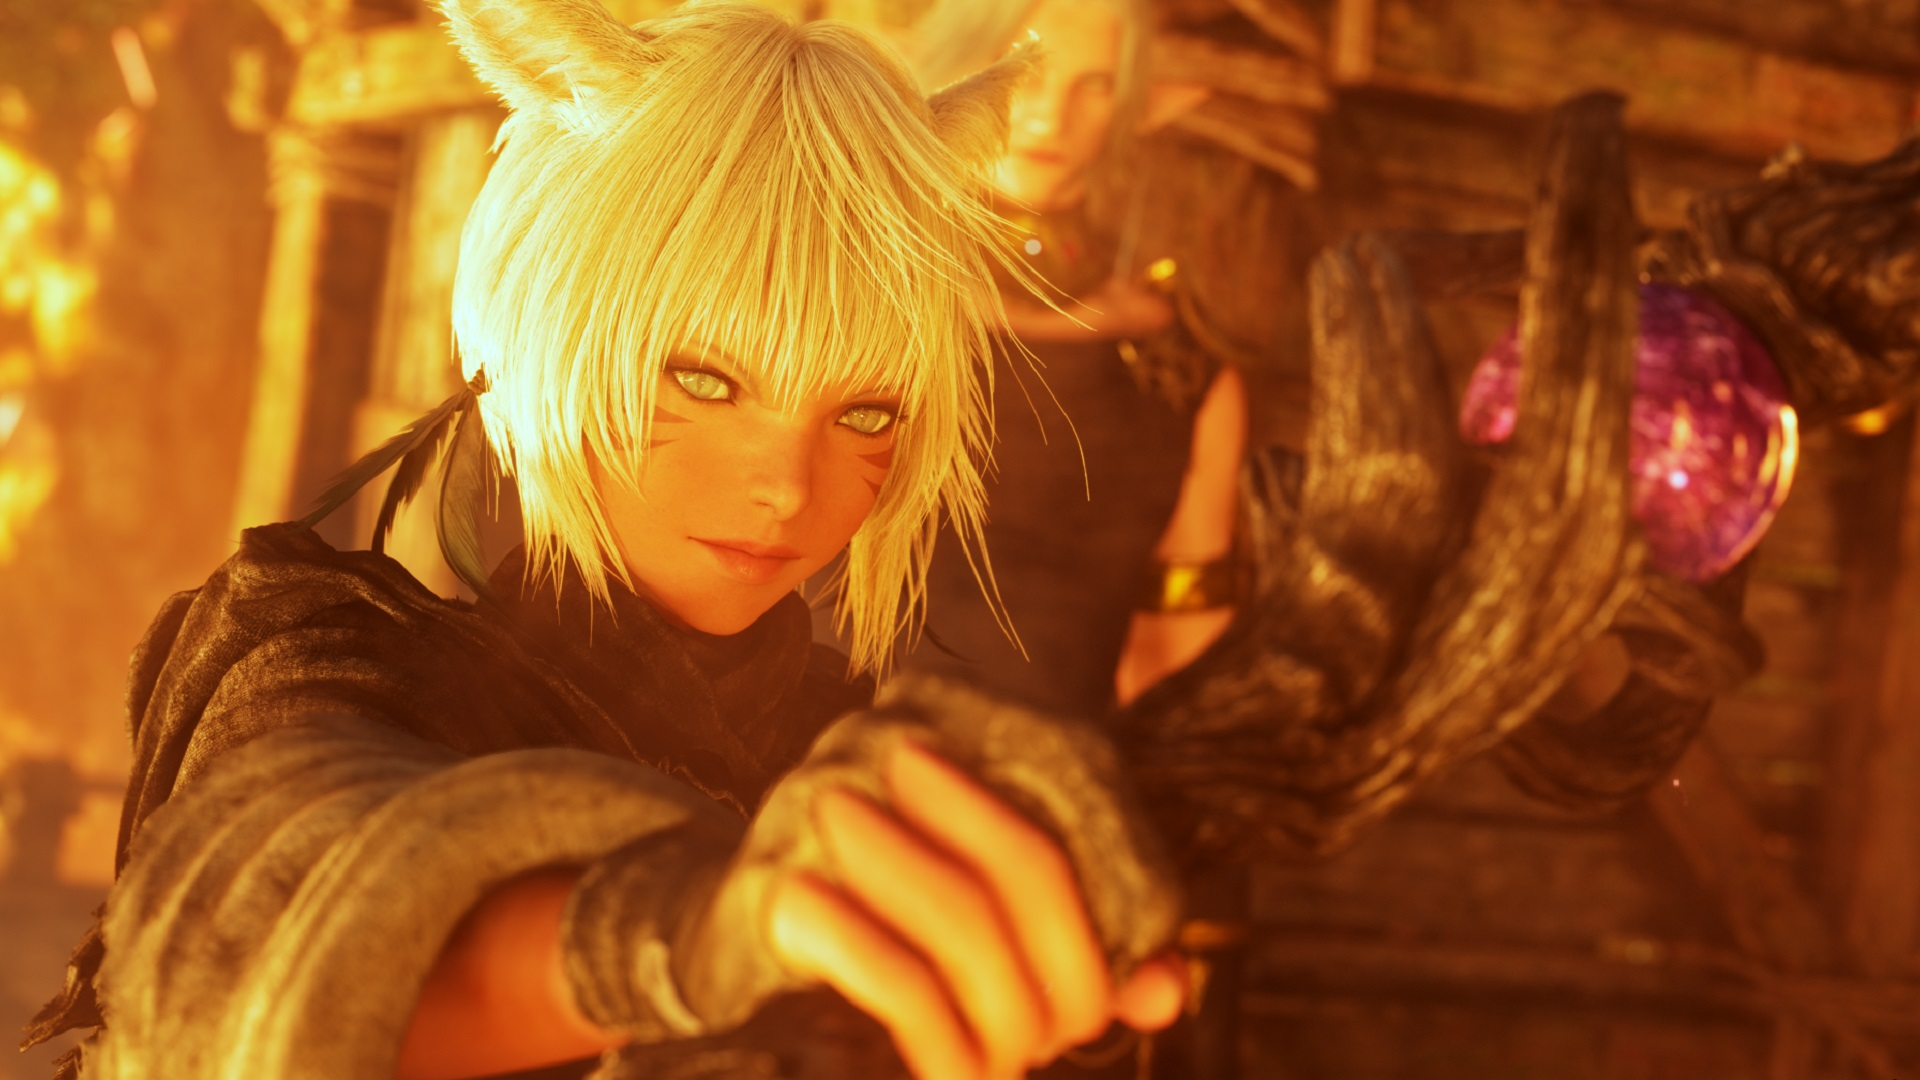 Final Fantasy XIV Shadowbringers Release Date New Jobs New Races Nier Raid And New Game